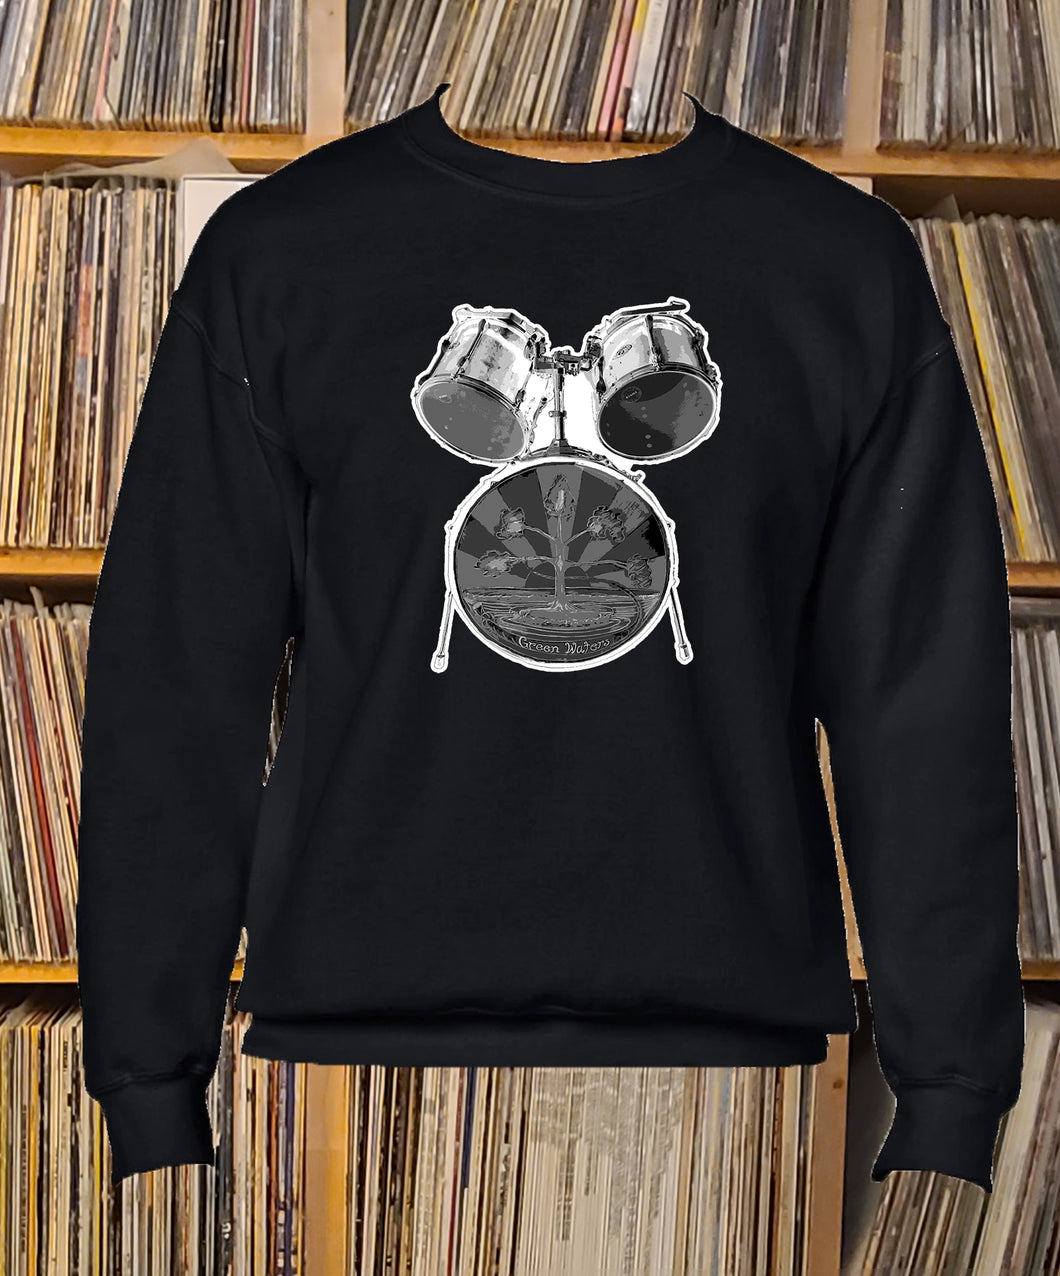 Greenwaters drum kit Sweatshirt